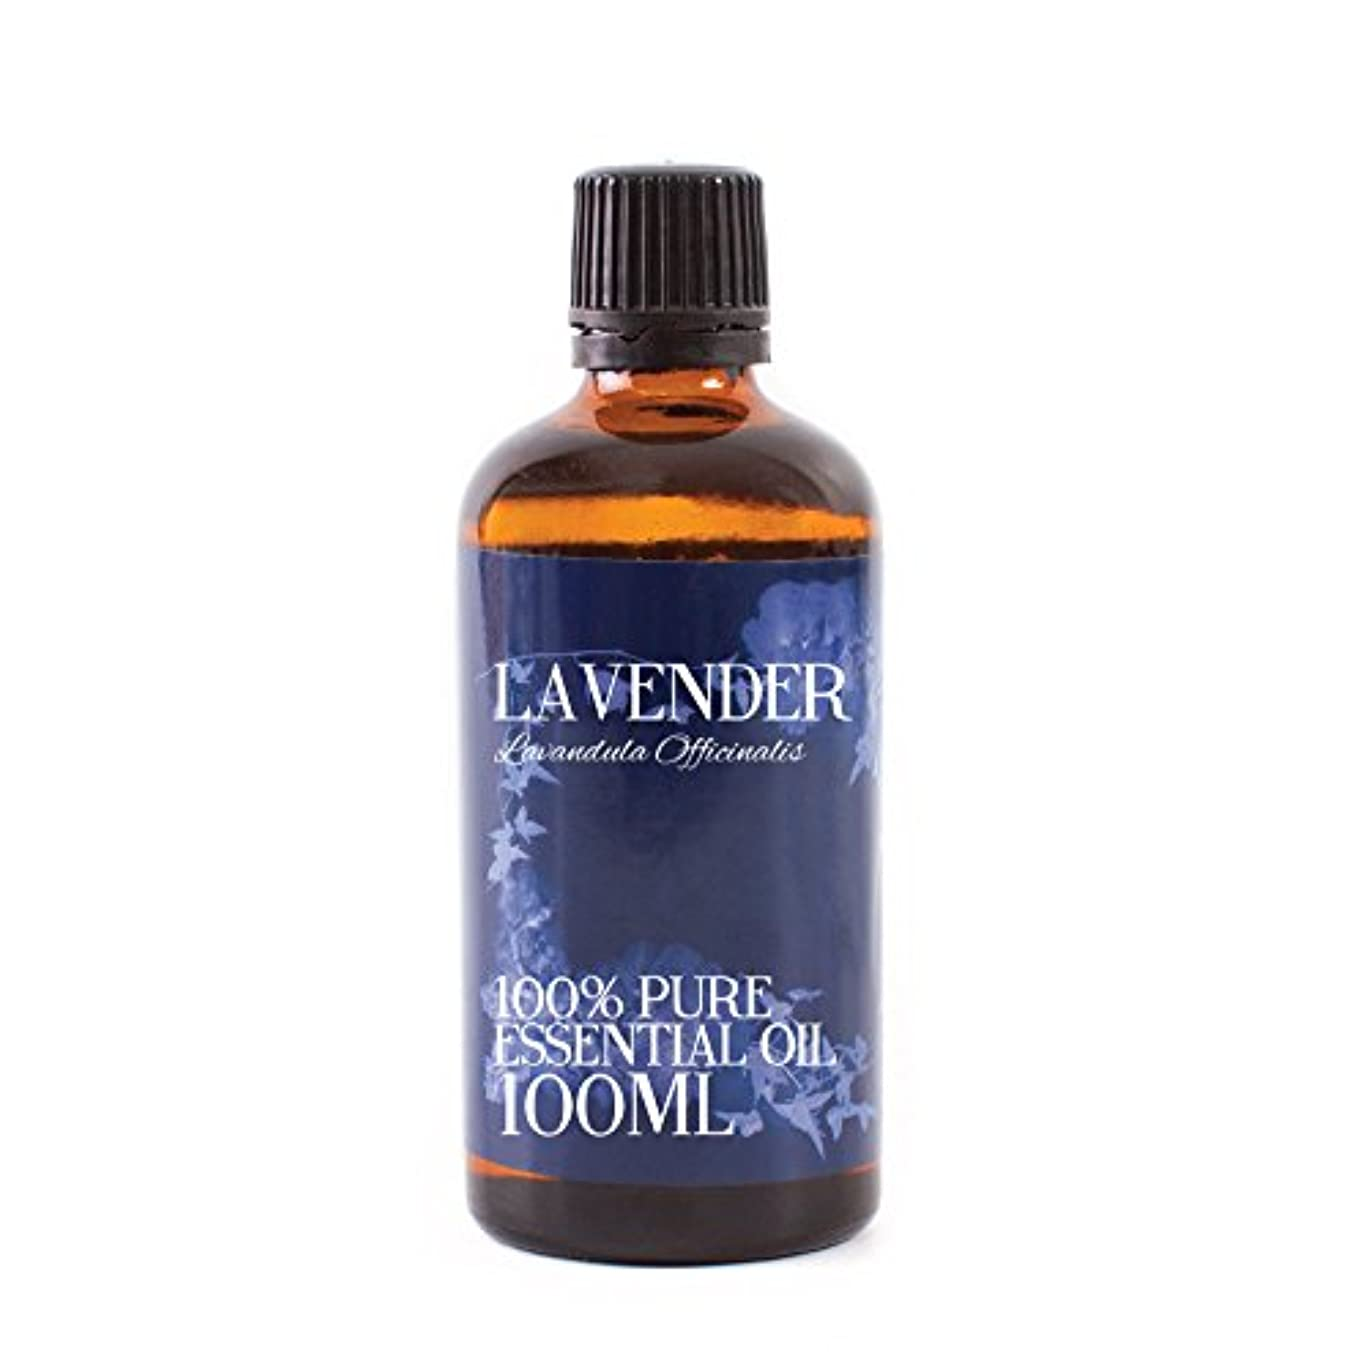 曲説得アブセイMystic Moments | Lavender Essential Oil - 100ml - 100% Pure